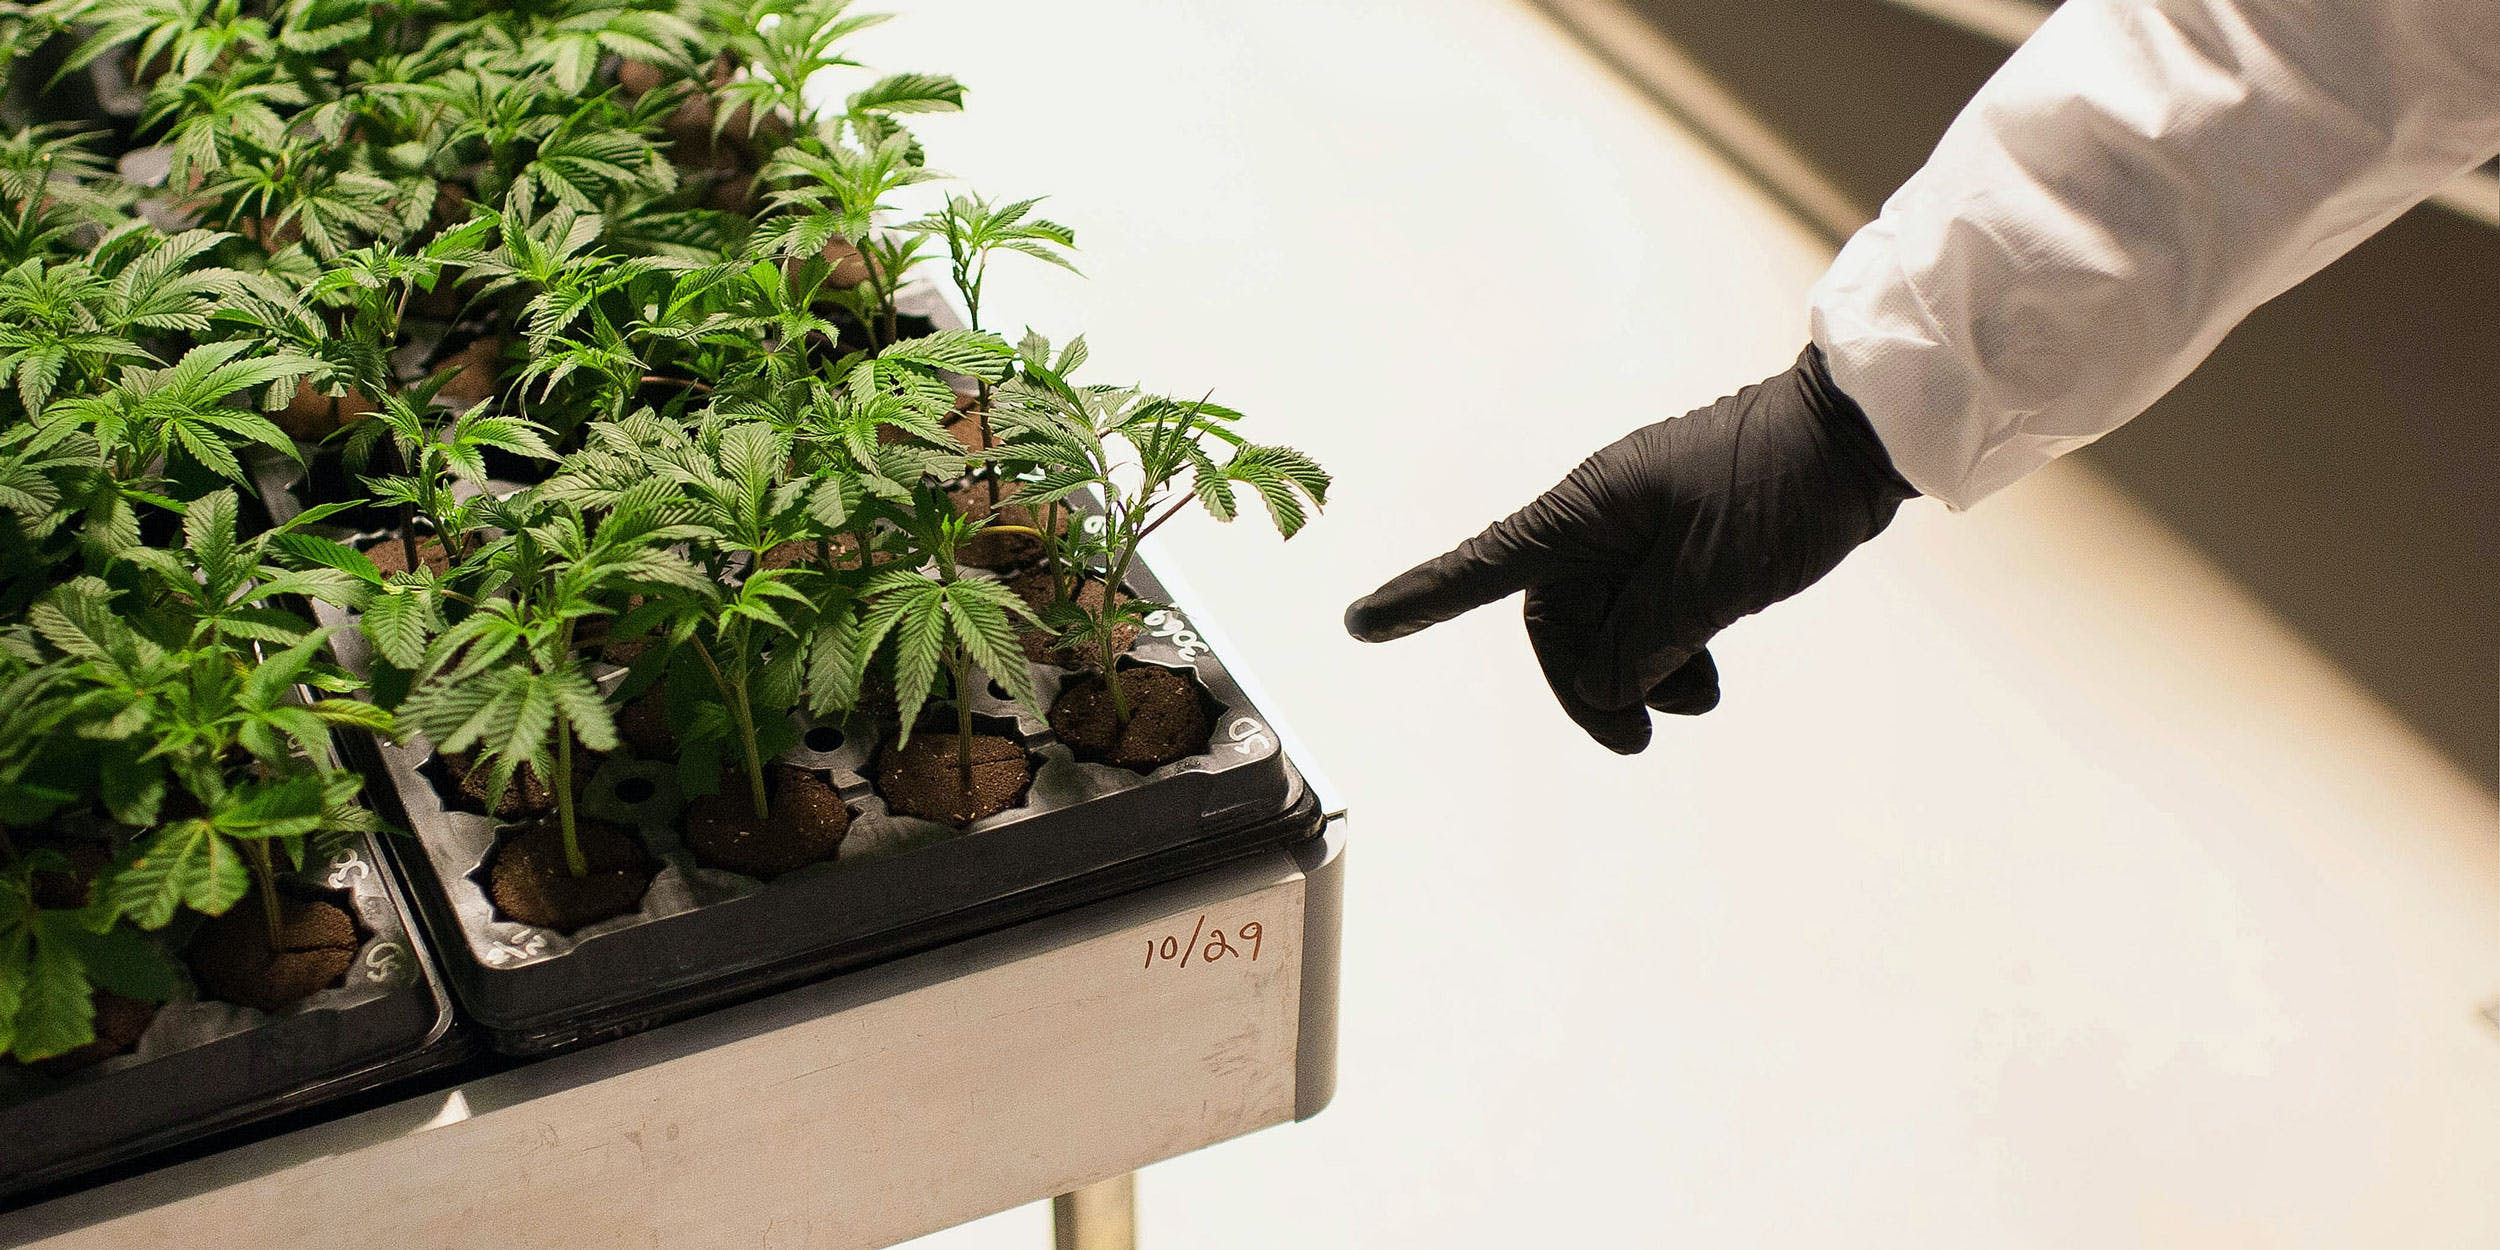 Cuttings from mother cannabis plants germinate in a grow room at the Tweed Inc. facility in Smith Falls, Ontario, Canada, on Nov. 11, 2015.